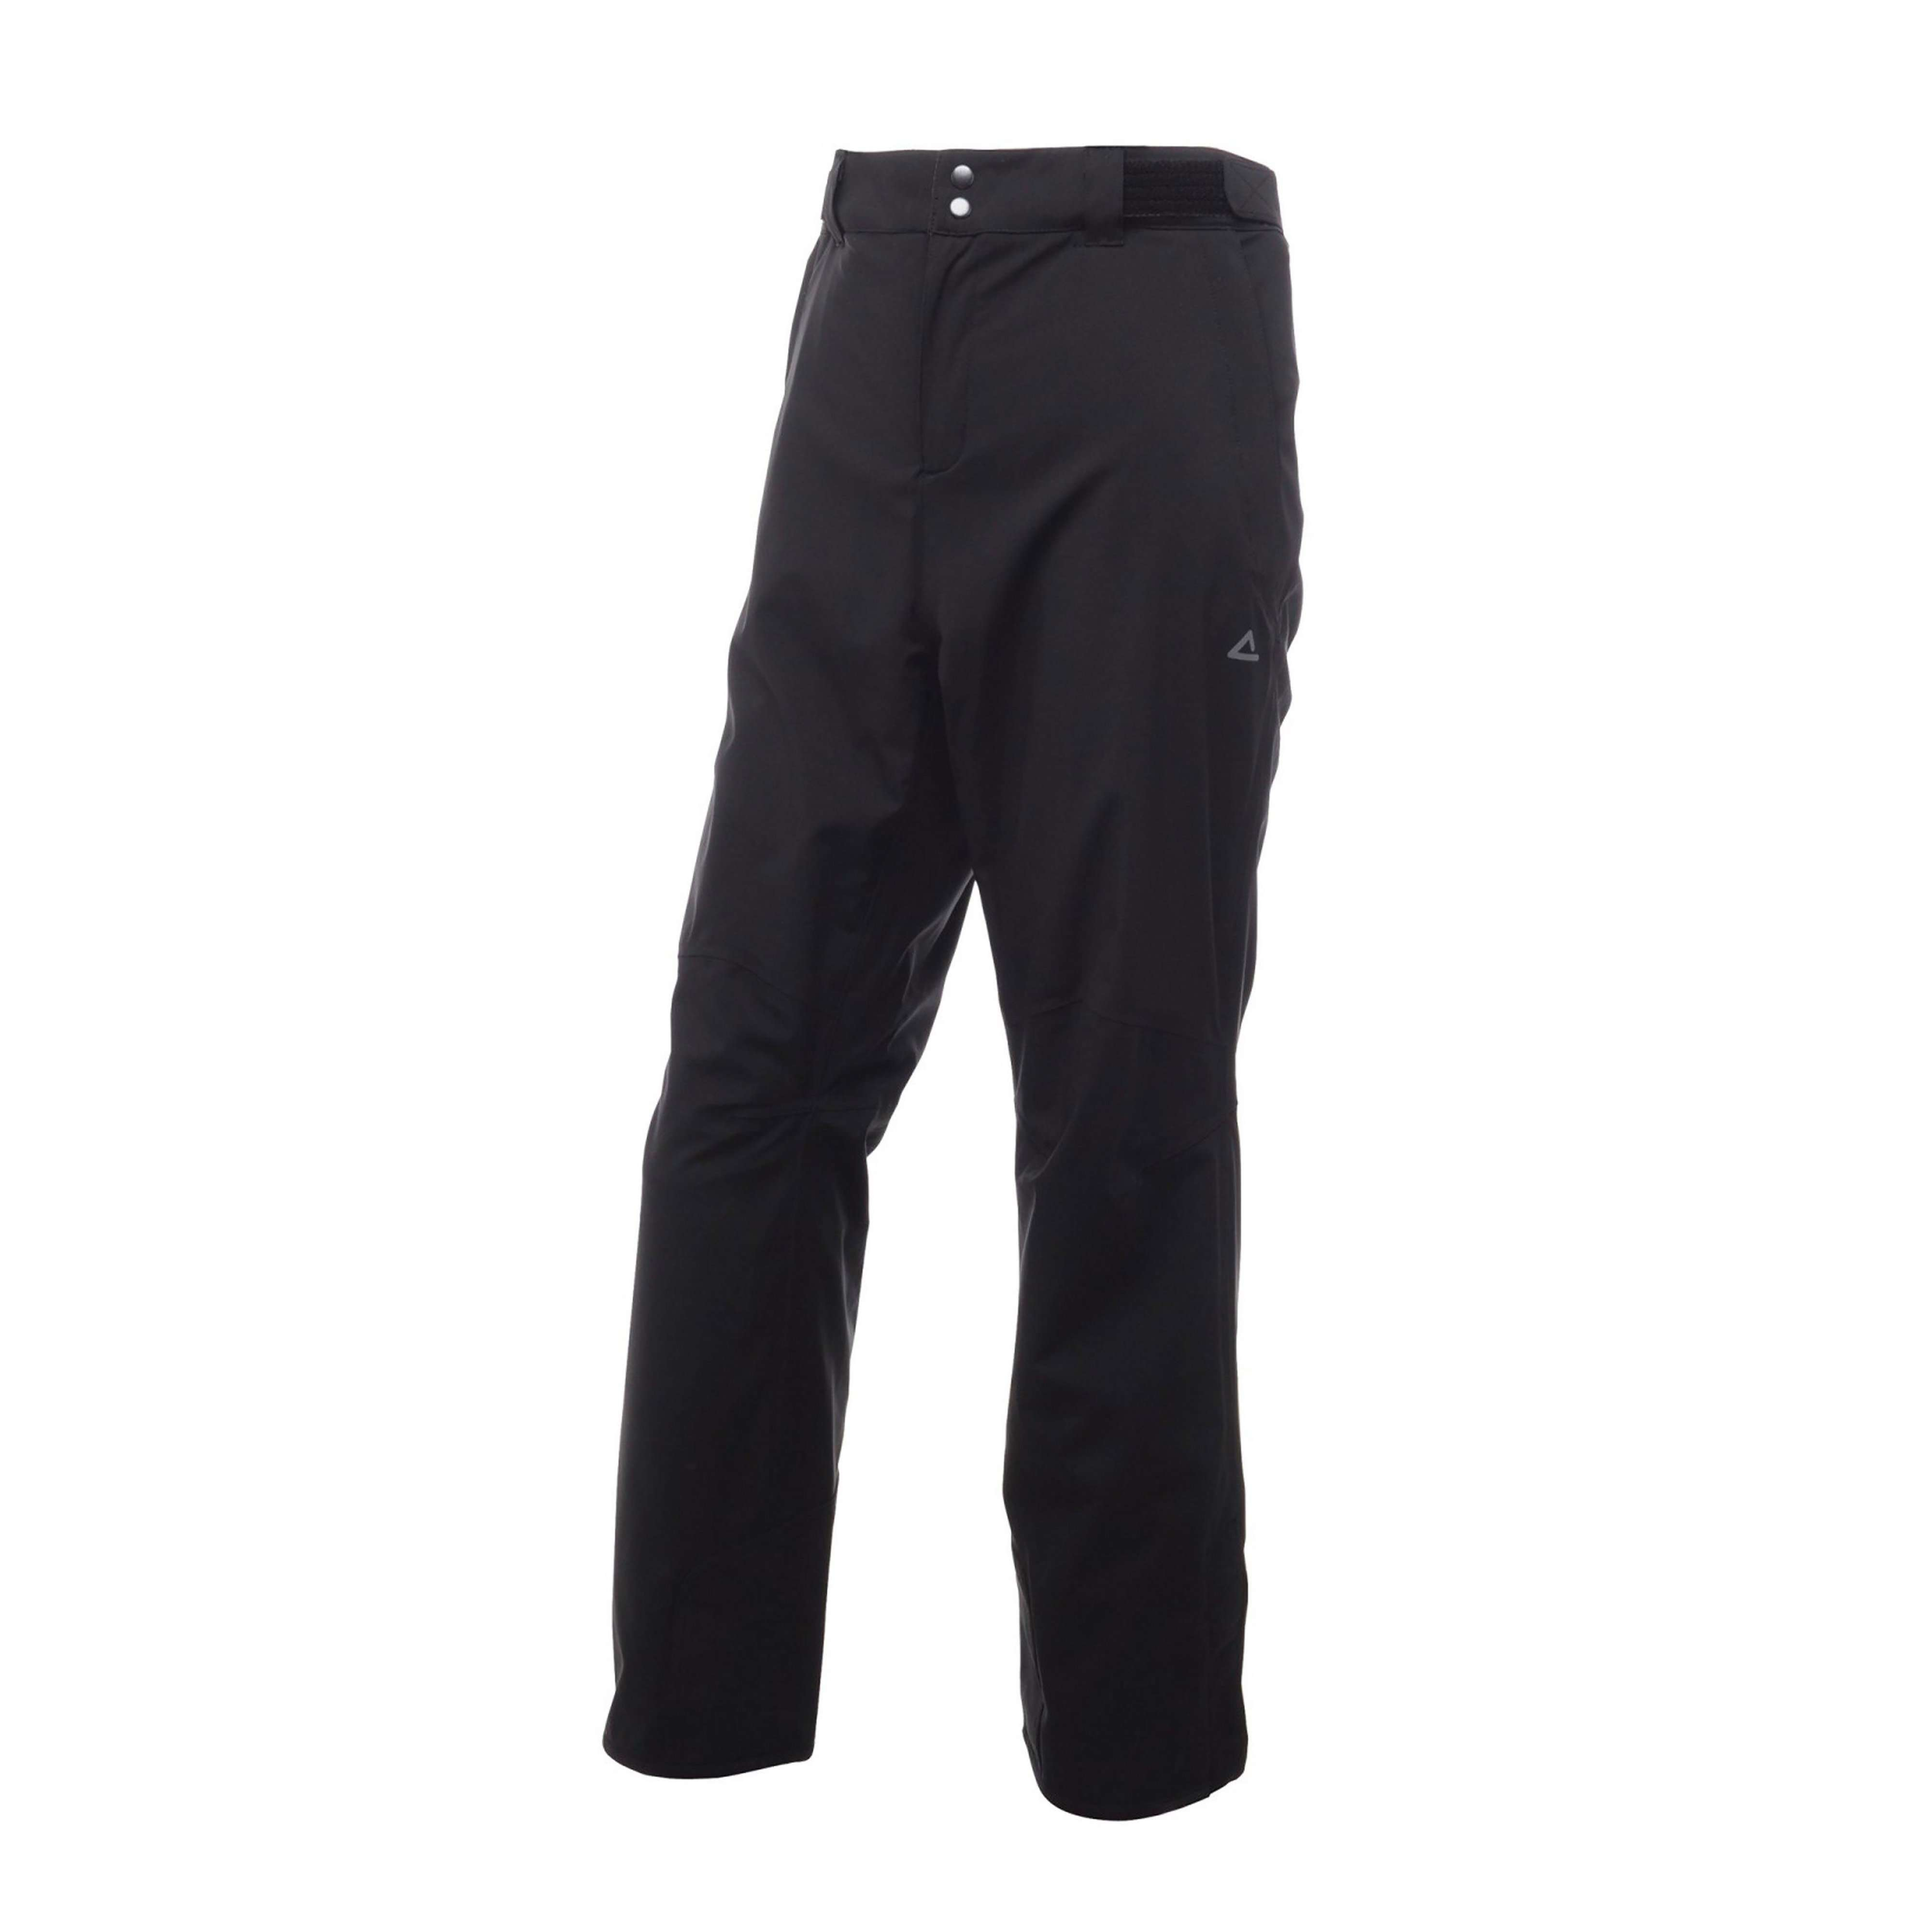 DARE 2B Men's Qualify Ski Pants